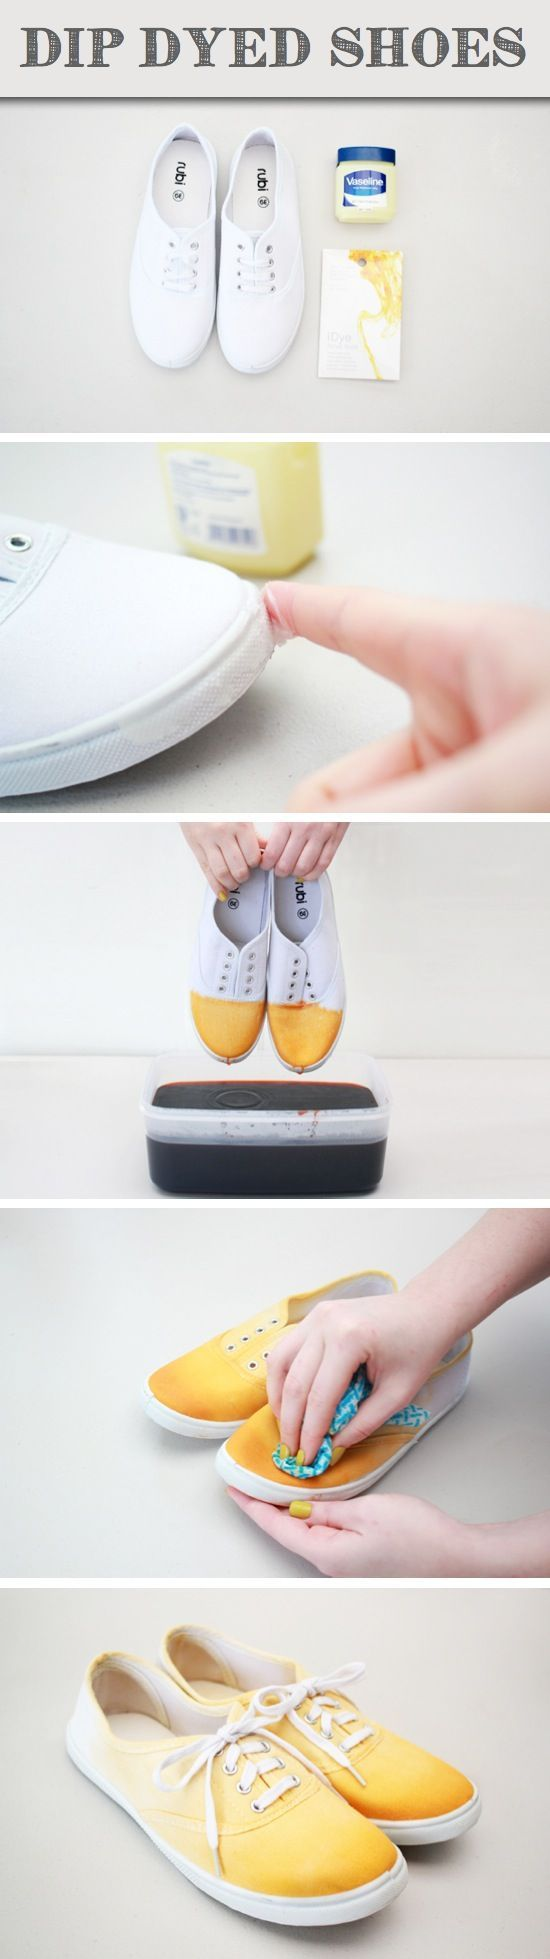 Cool dipped shoes to maybe do during summer